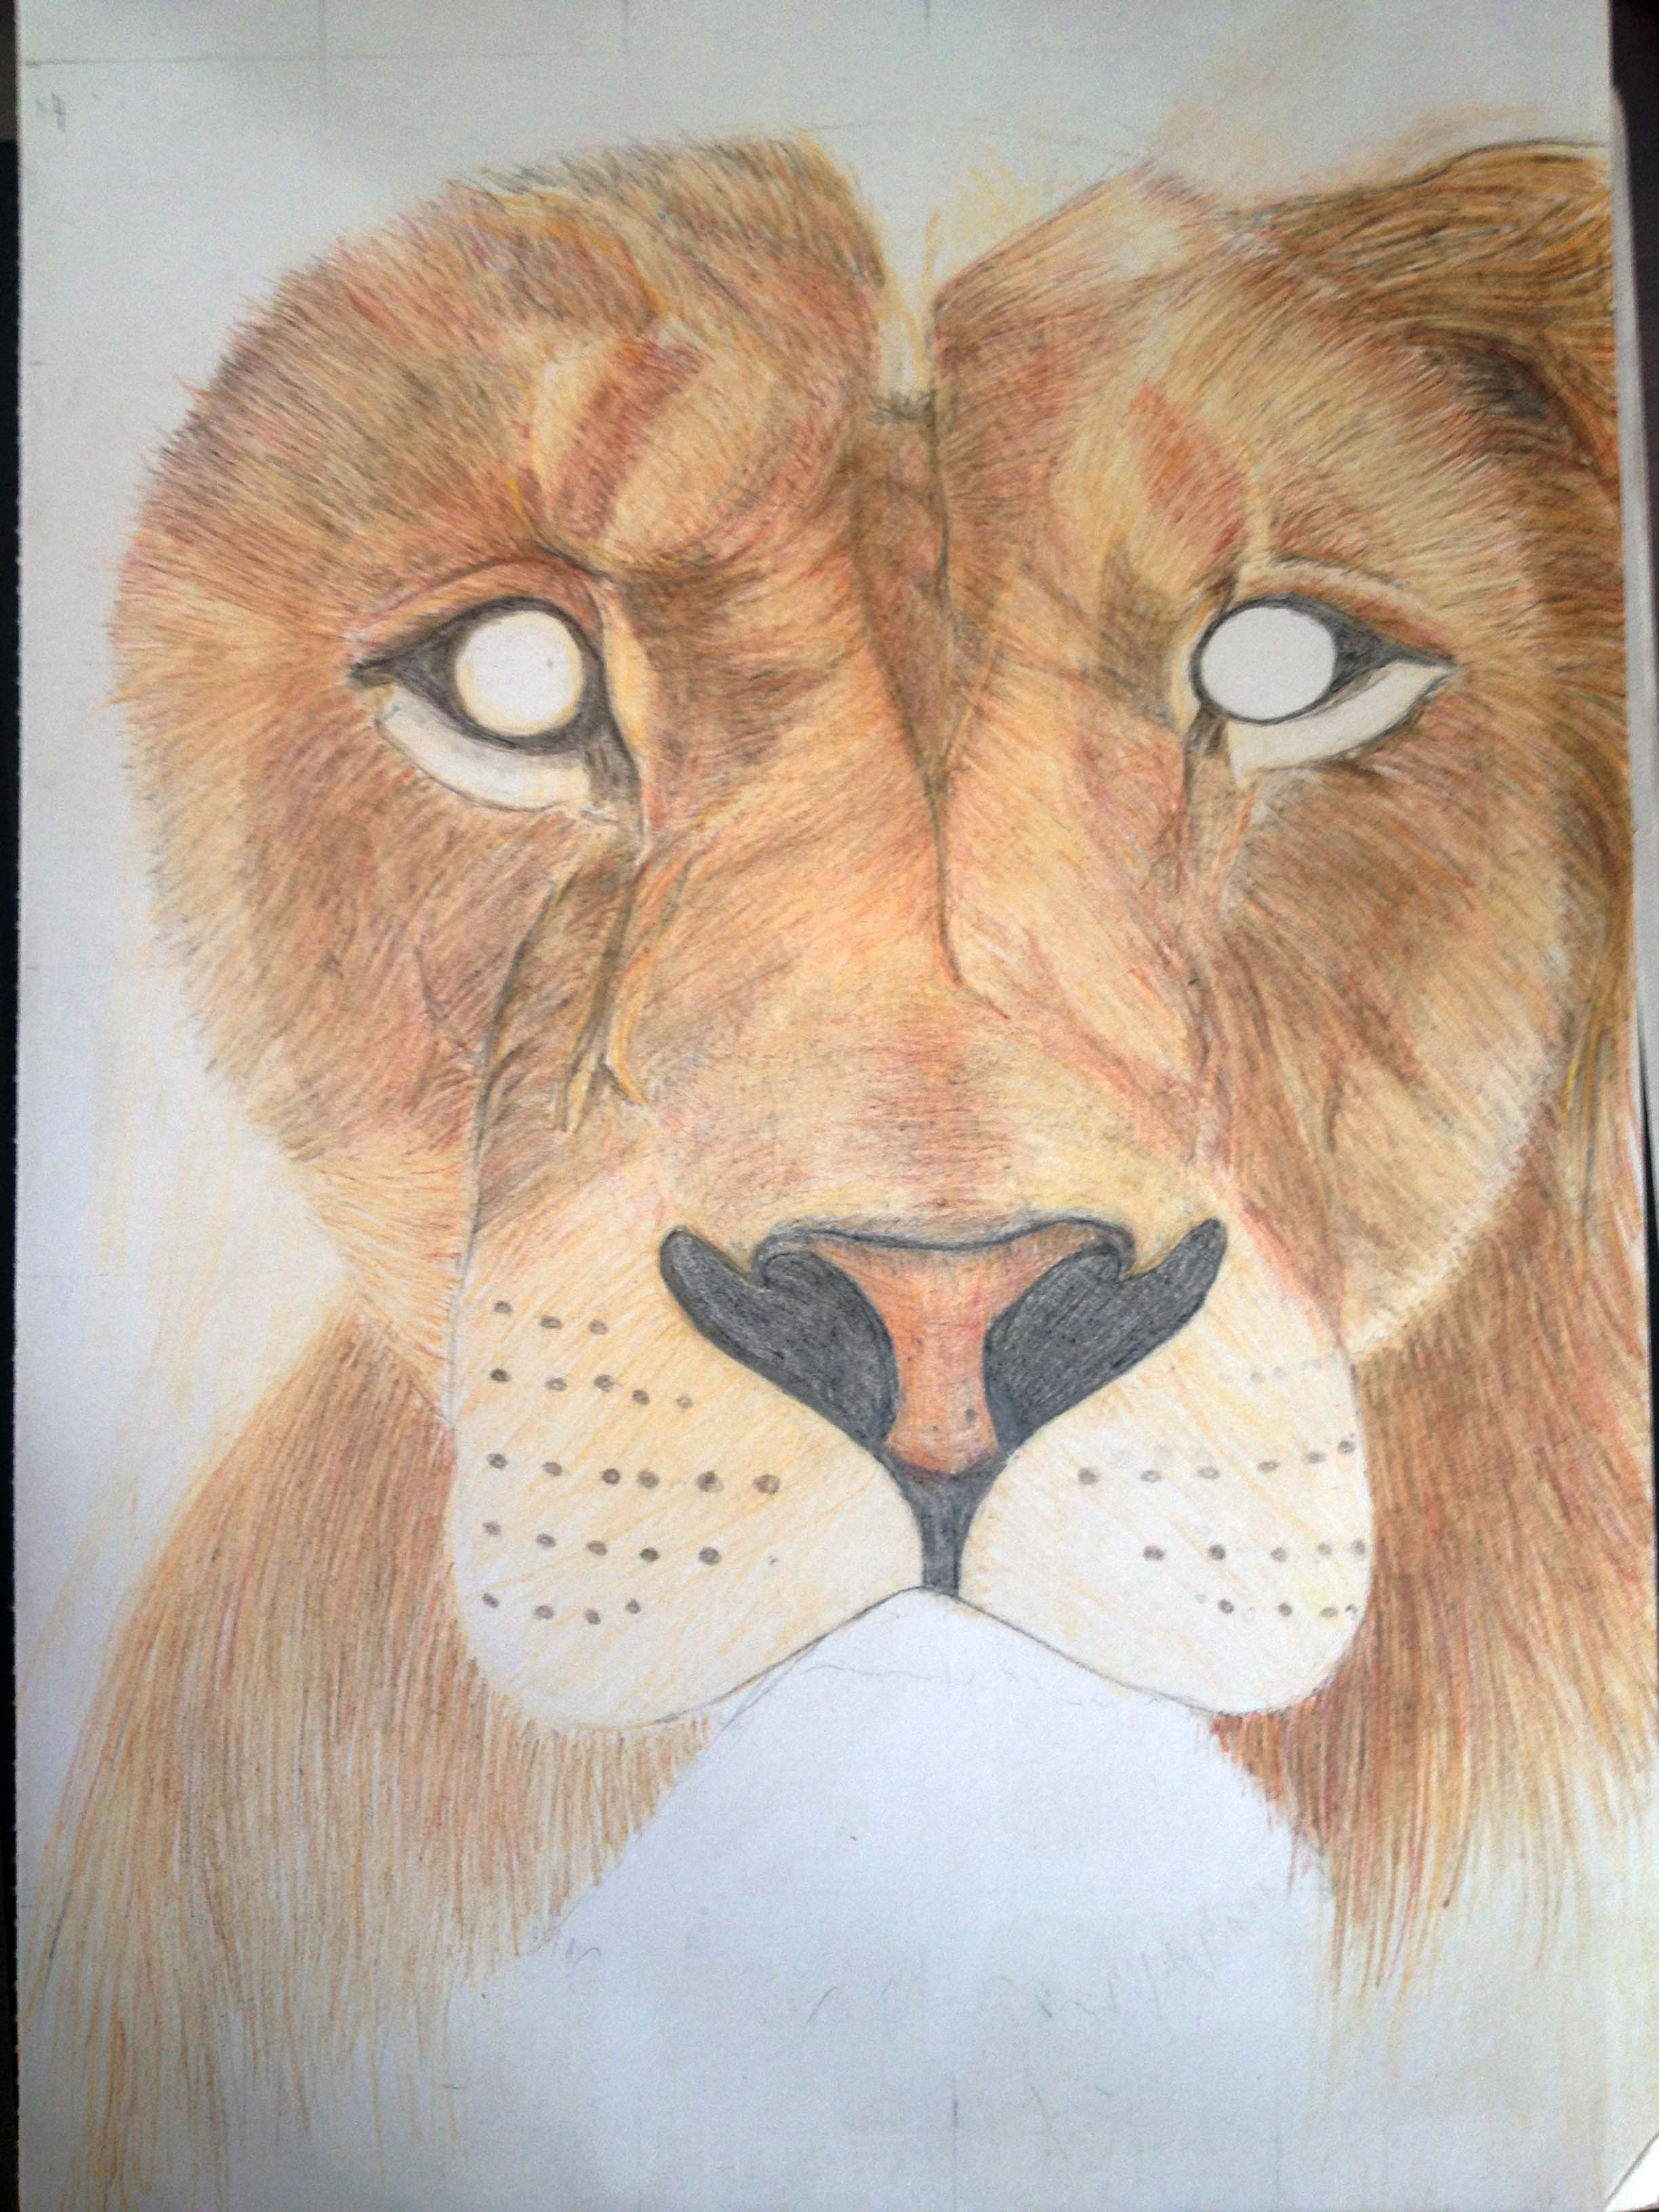 The Best Free Hannah Drawing Images Download From 50 Drawings Glenfield Model 60 Schematic Caroldoey 2448x3264 African Lion Lewis A Work In Progress